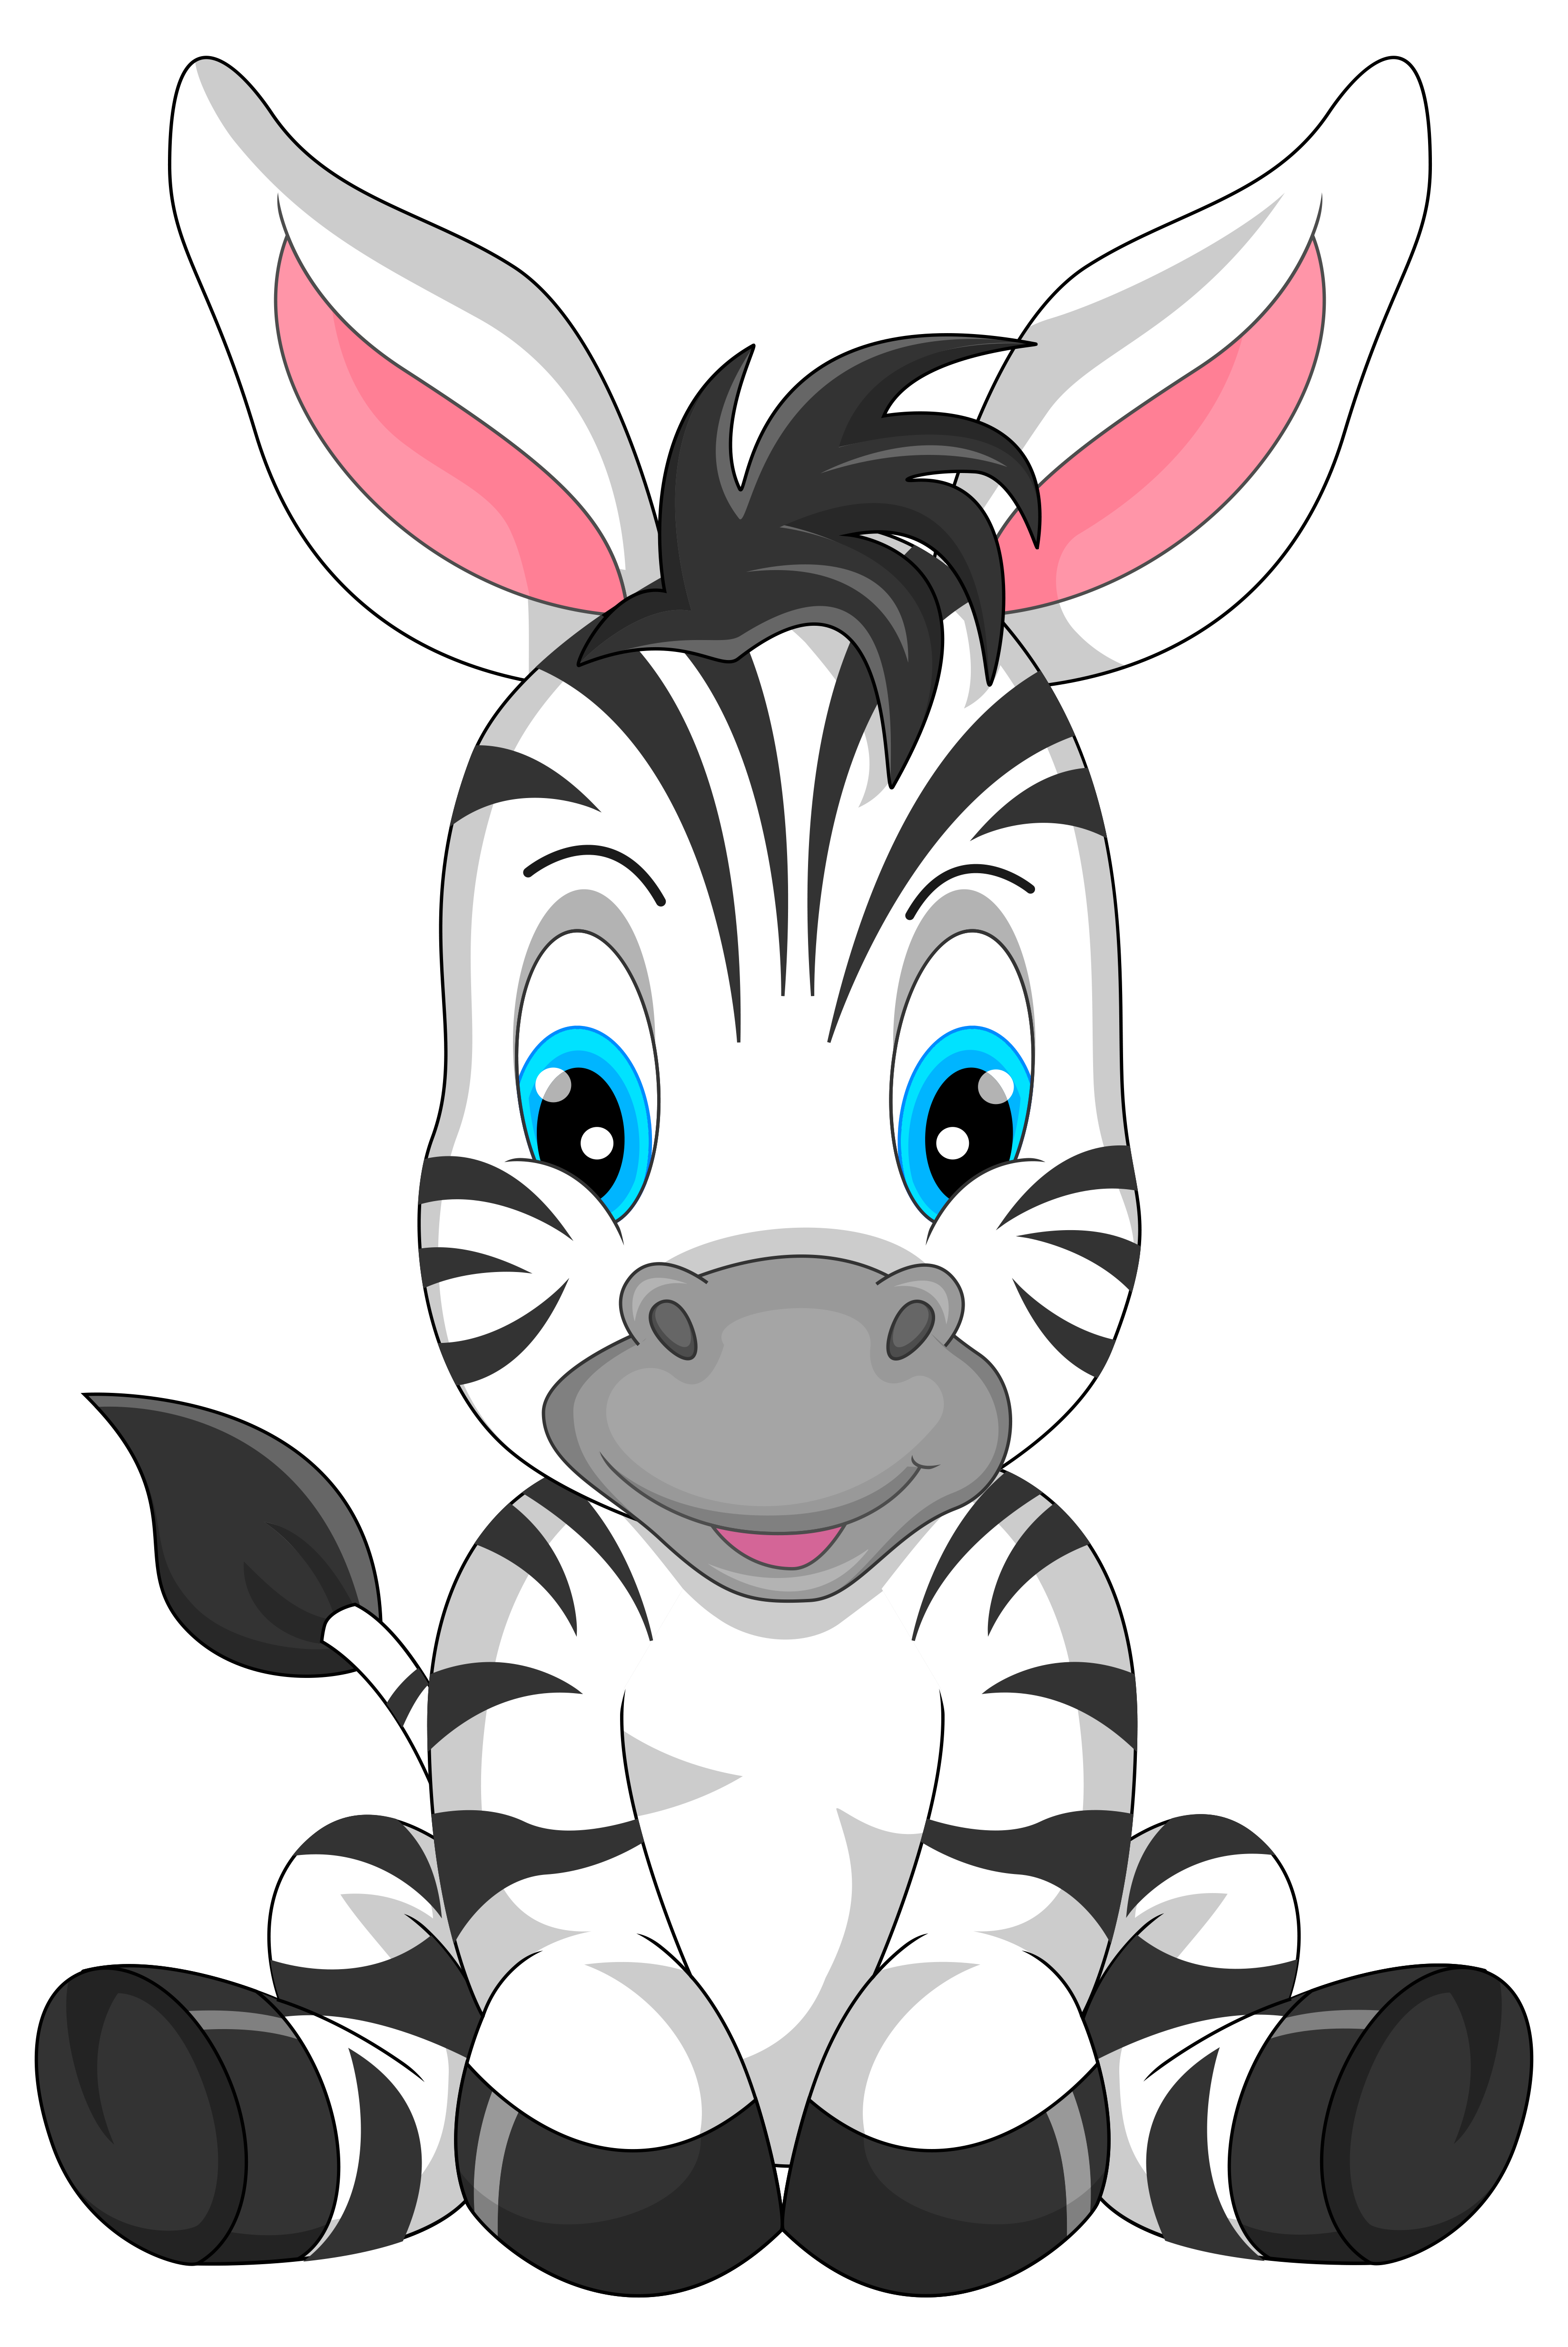 Zebra clipart transparent background. Cute cartoon png image